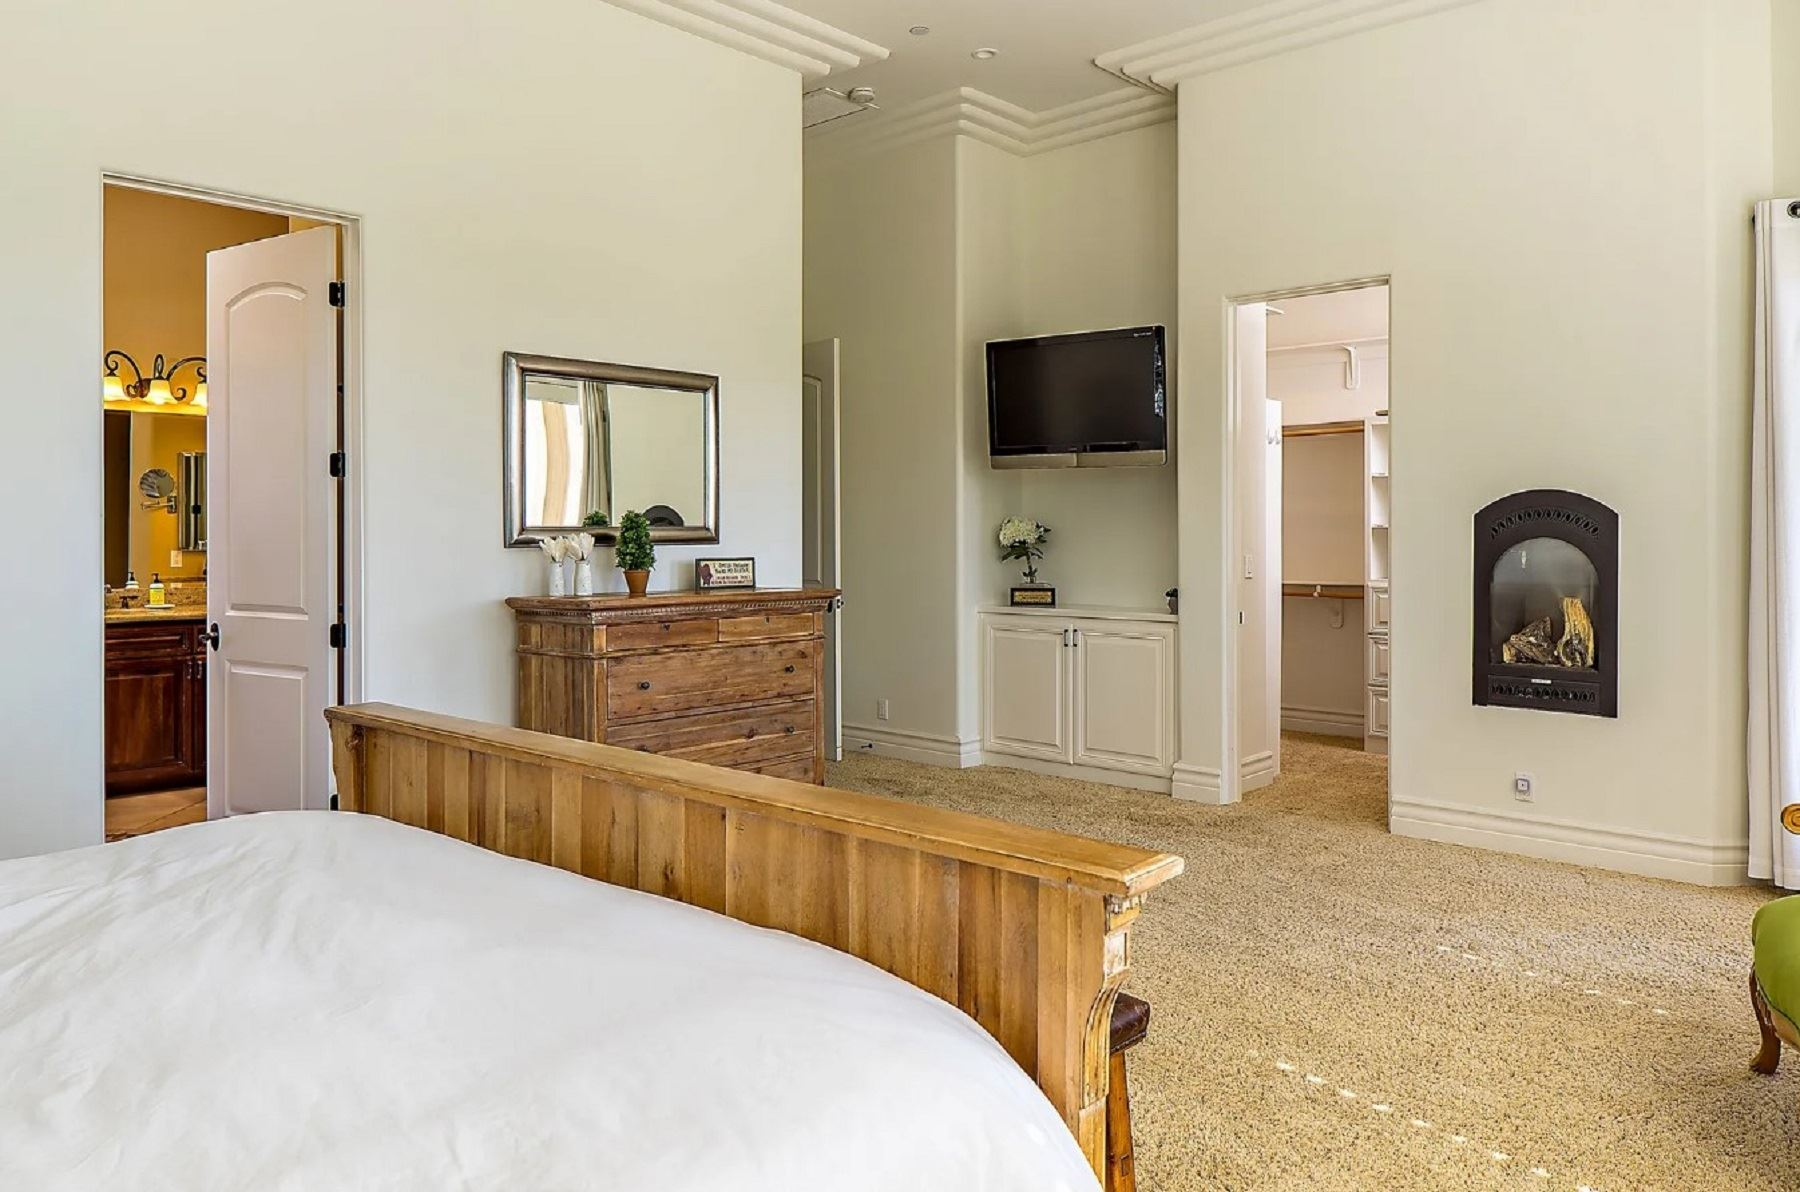 Frontier Farmhouse - Interior - Large Bedroom with dresser and mirror as well as view into onsuite